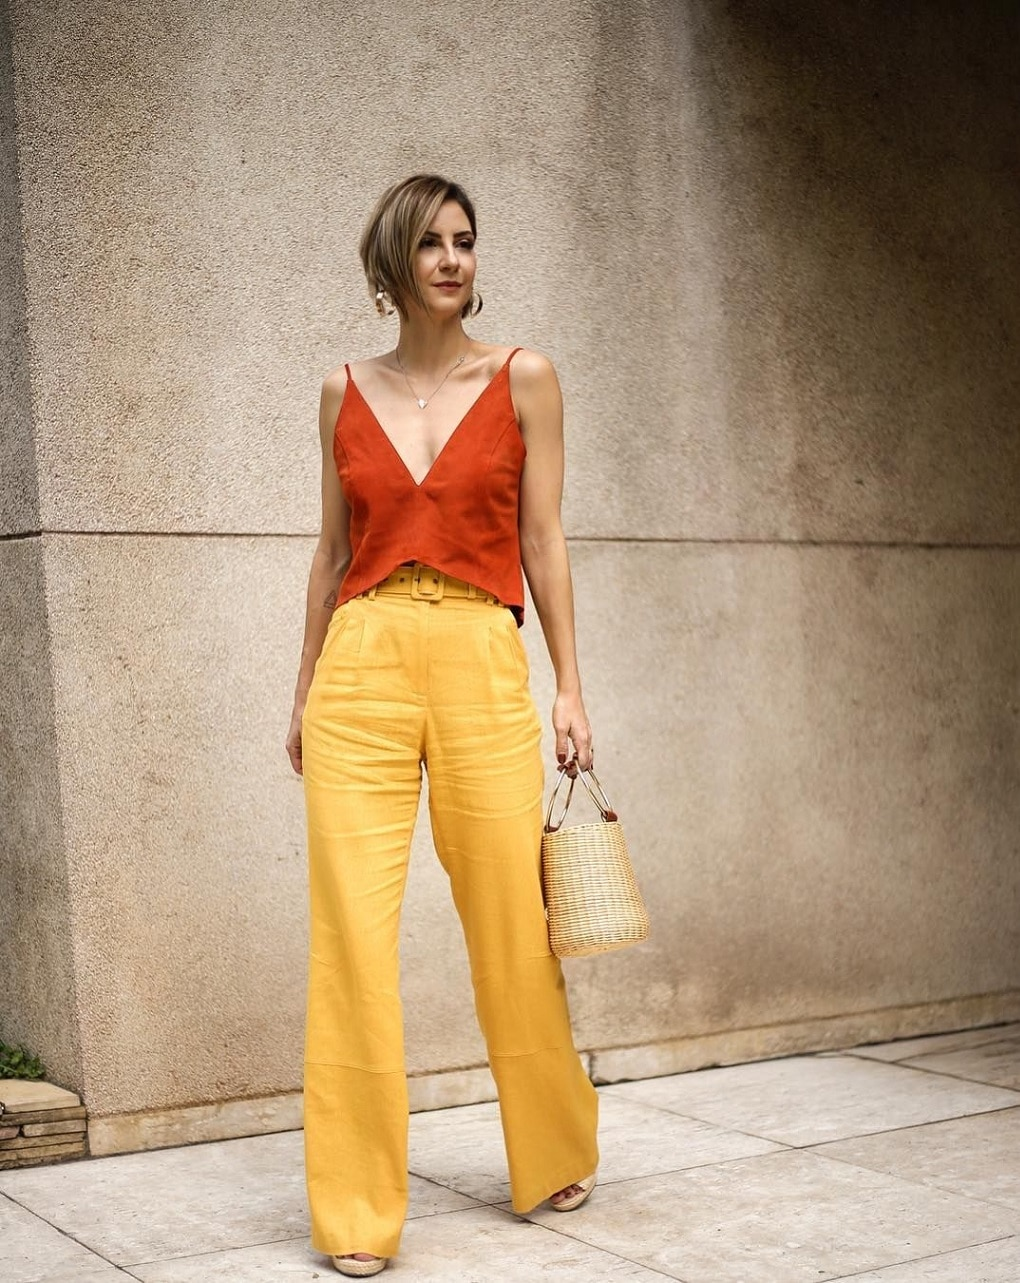 Roupas Femininas, Look Com Macacão Monocromático, looks para happy hour, looks happy hour, do escritório para o happy hour,Macacão Rosa Para o Happy Hour, Macacão Azul Para o Happy Hour